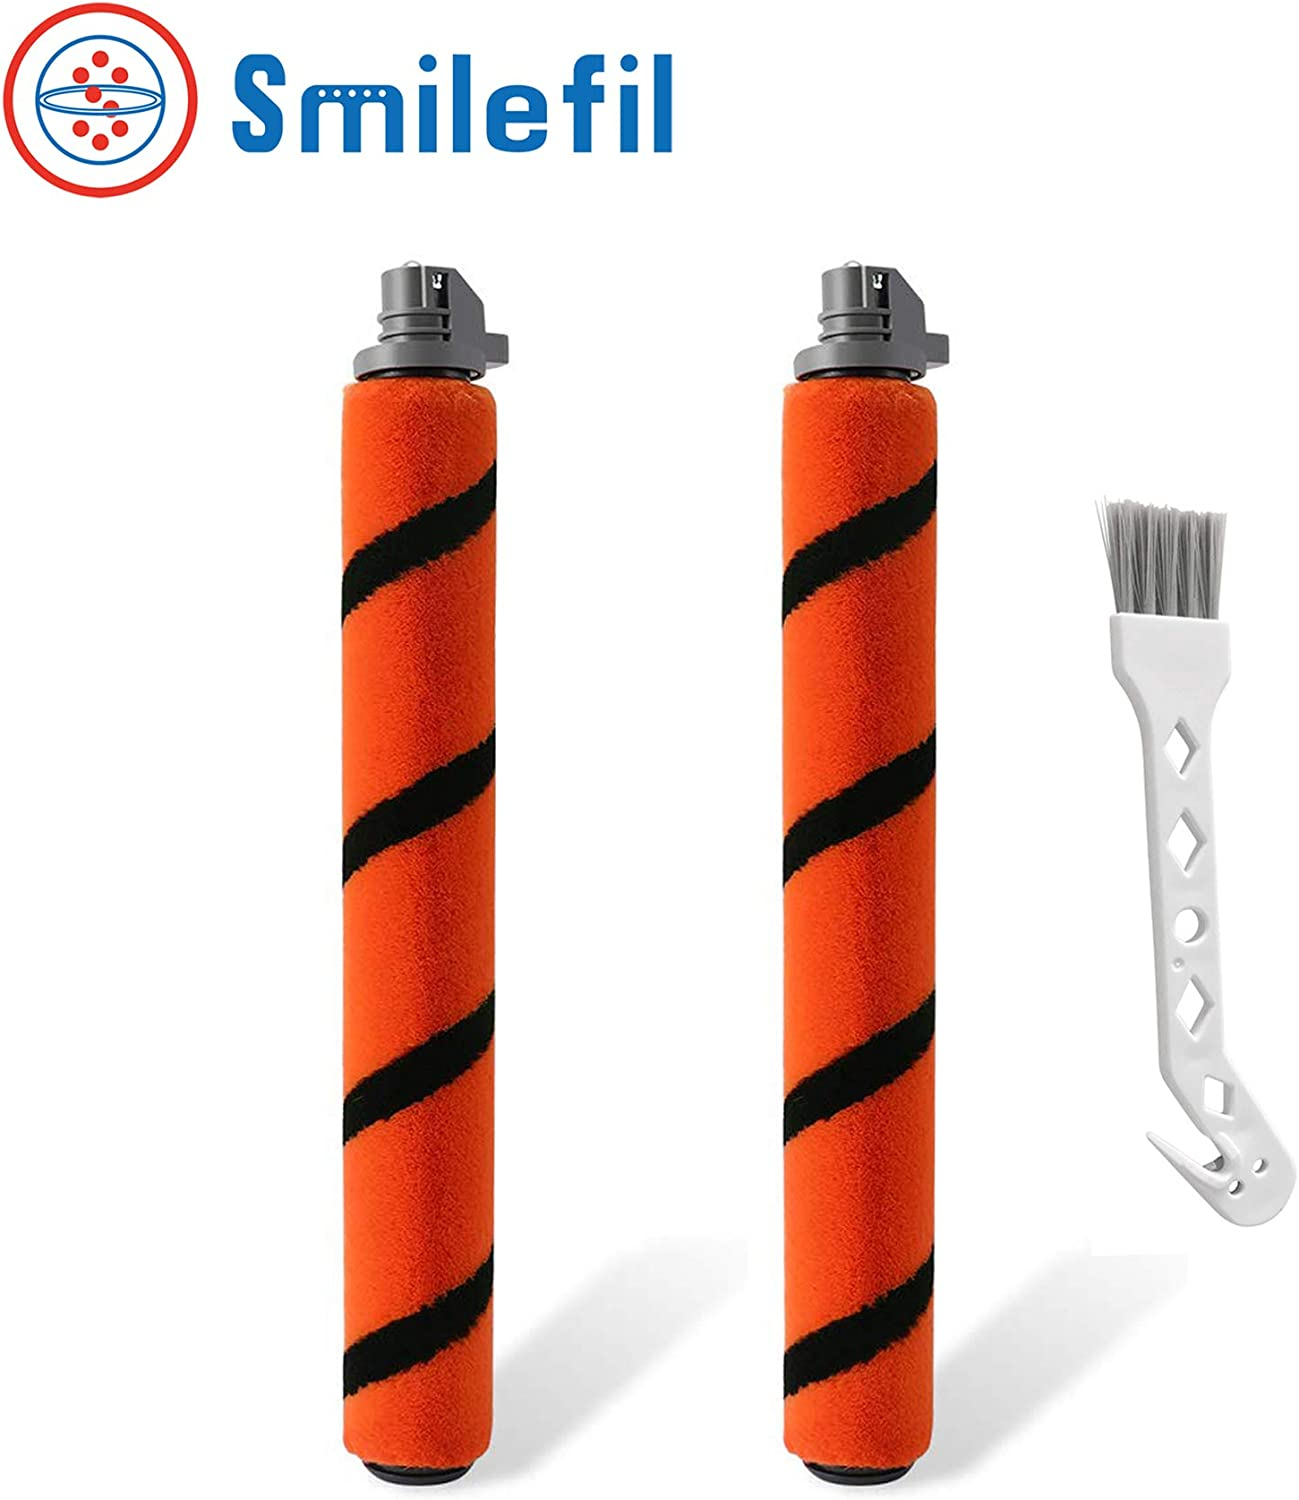 Smilefil Soft Brush Roll Replacement Compatible with Shark HV390, HV391, HV392,IC205,IF200,IF201,IF202,IF203Q,IF205,IF251,IF281,IR141,IR142,UF280 Flex DuoClean Vacuum Cleaner, 2 Pack